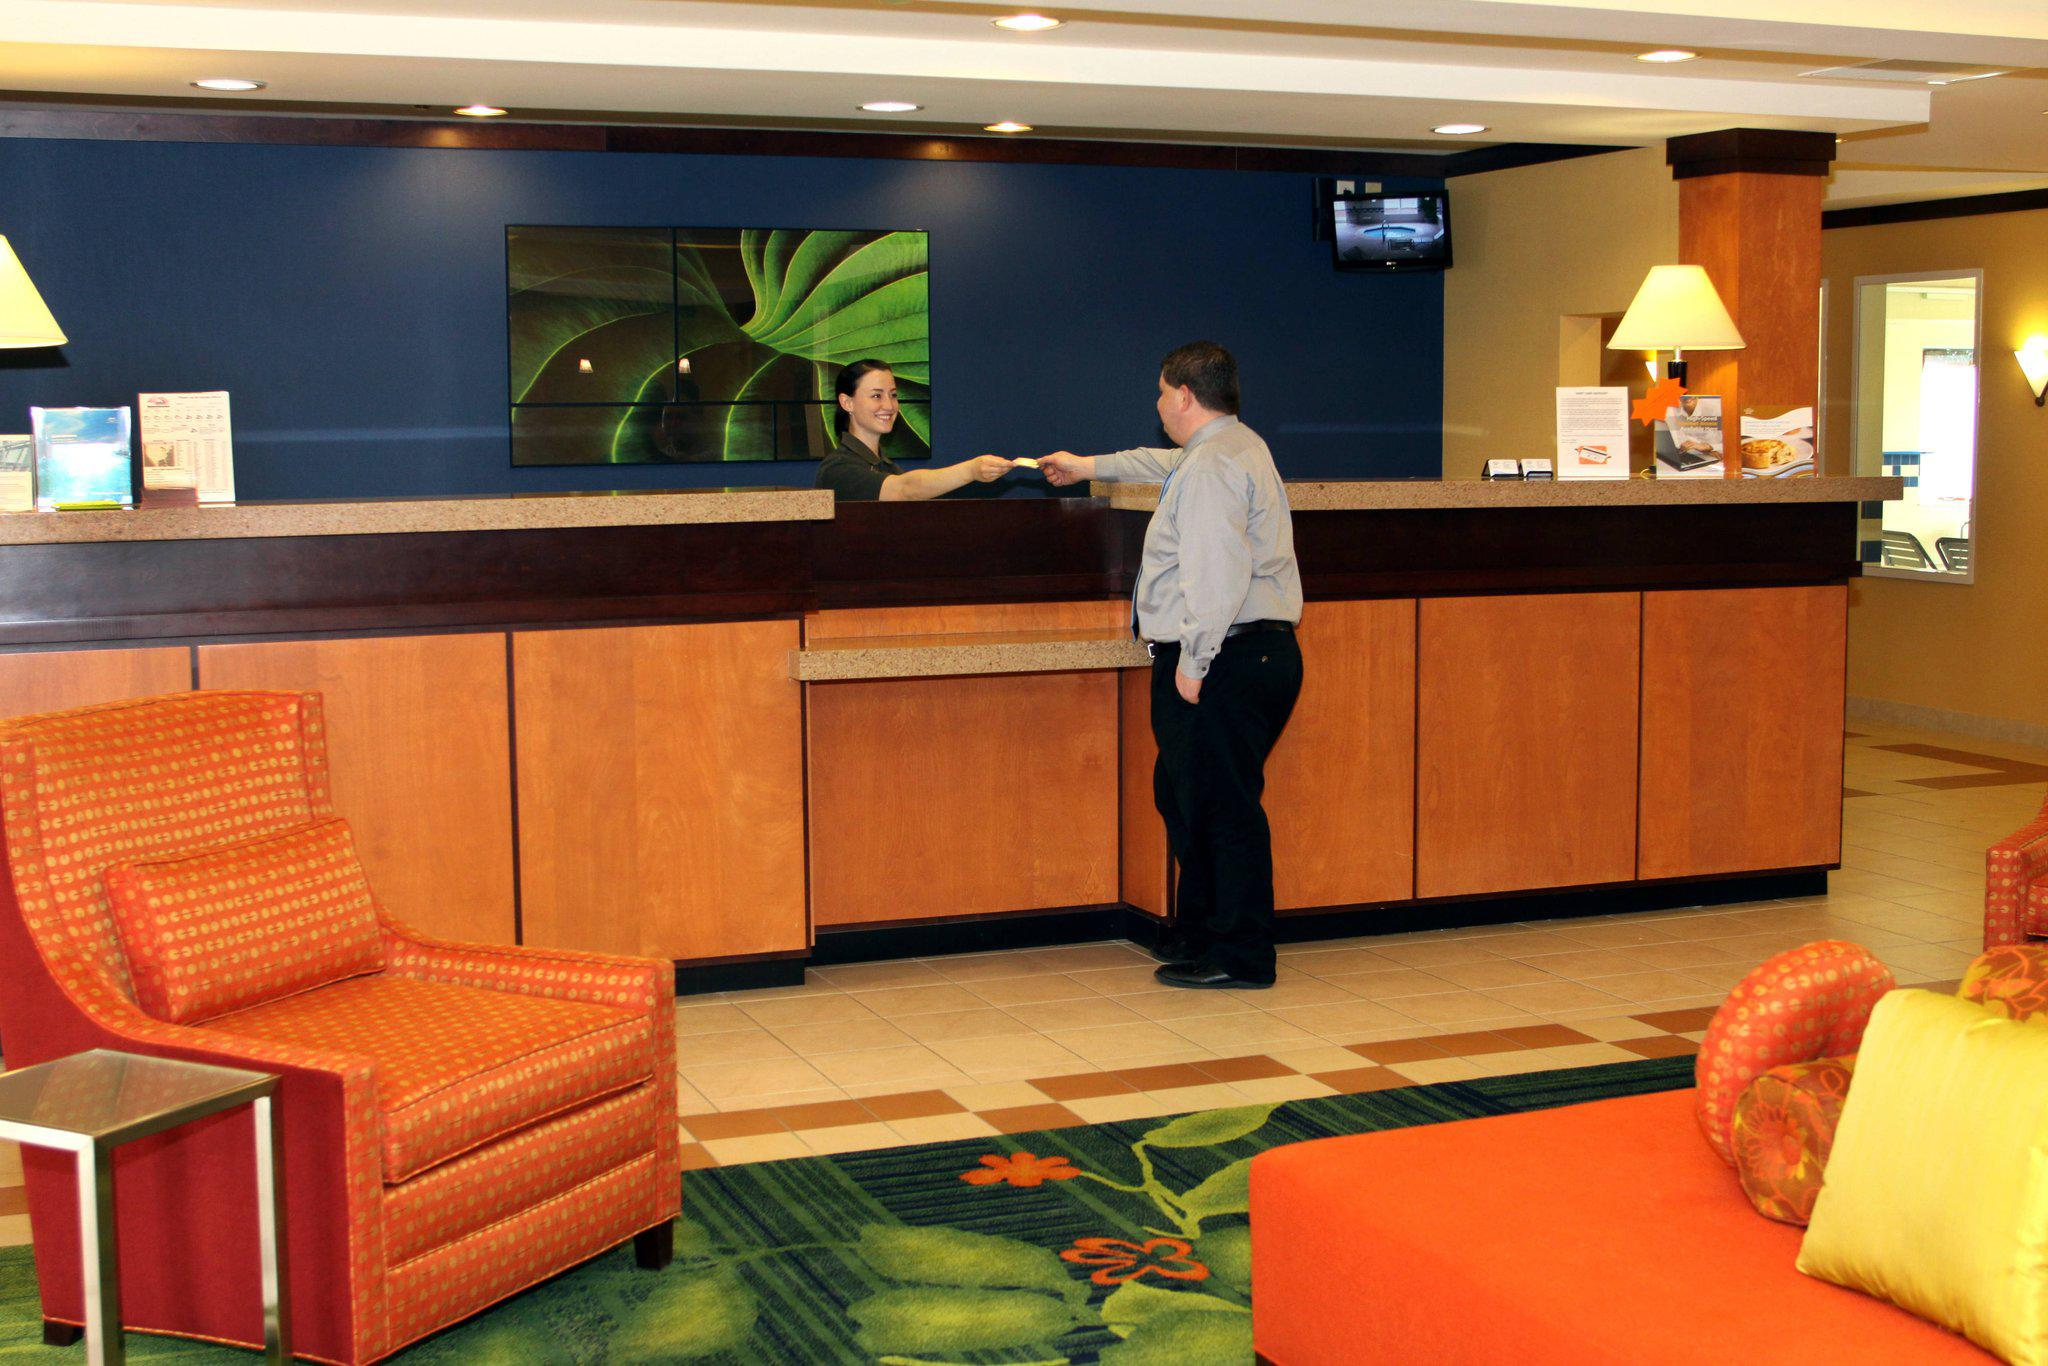 Fairfield Inn & Suites by Marriott Marion